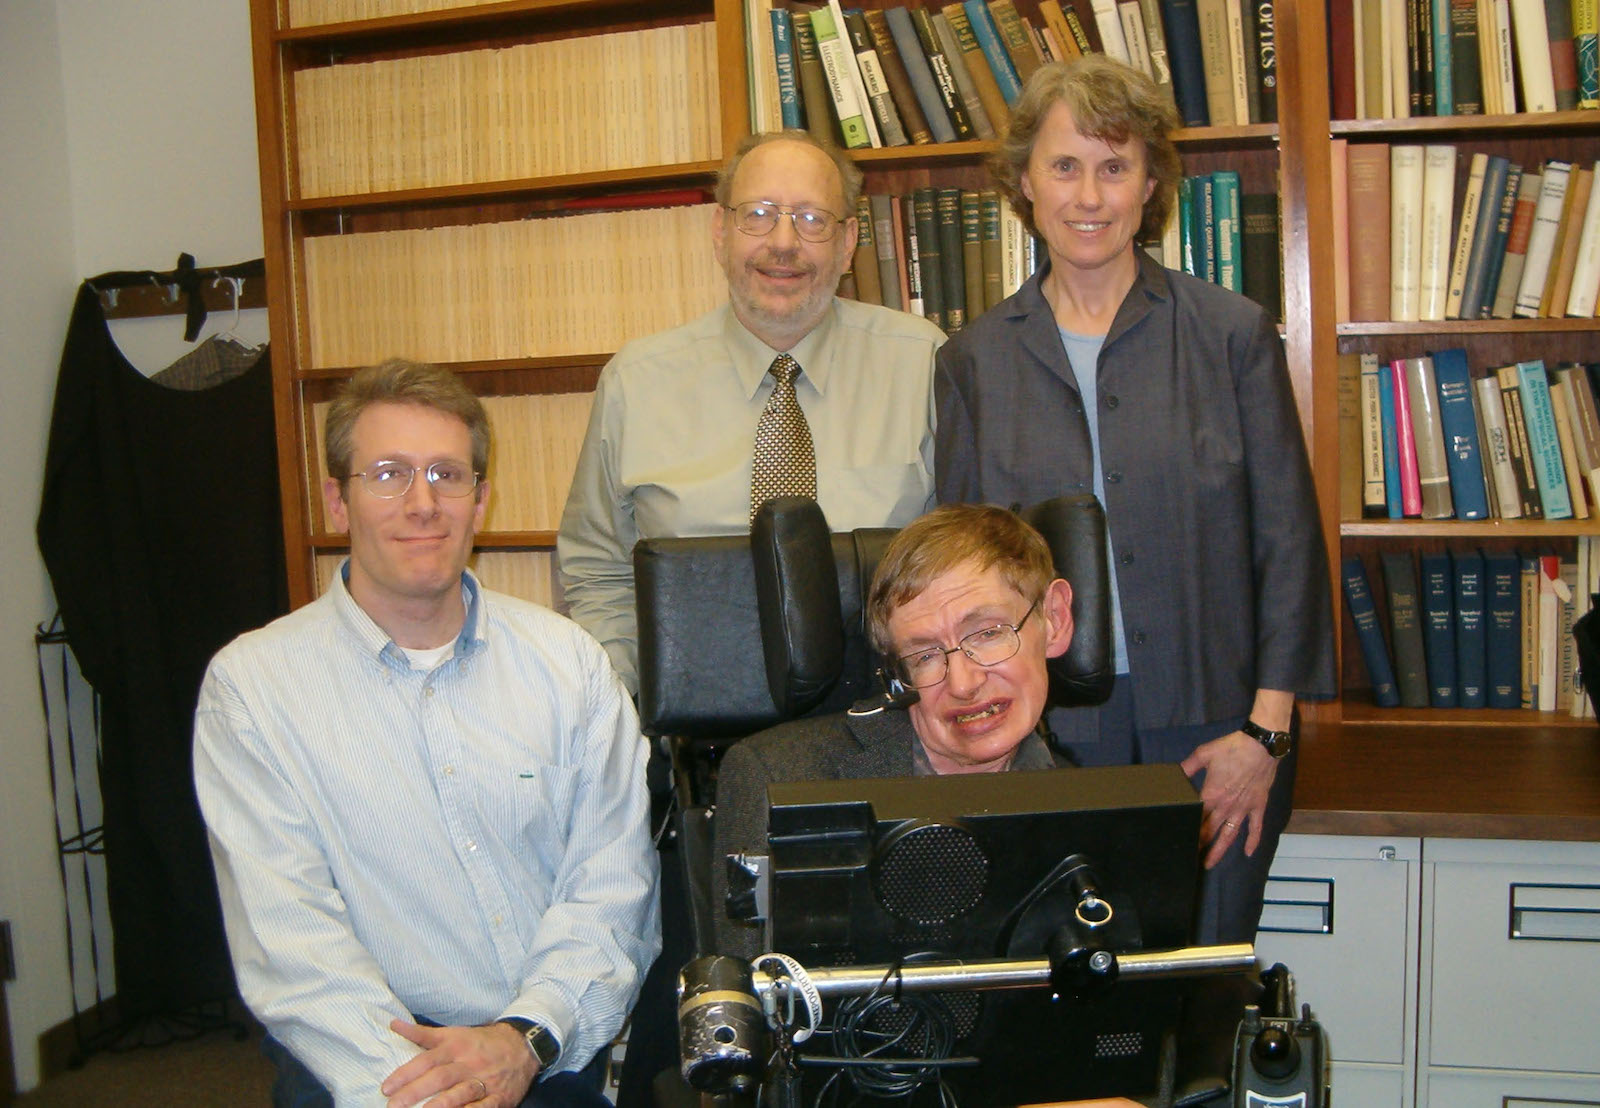 Photo of three people with Stephen Hawking. Caption: Famous physicist Stephen Hawking (foreground), disabled by neuromuscular disease, depended on scientists and engineers who developed the technologies that enabled him to overcome the loss of speech. Speech synthesis and acoustics experts who helped him included (from left behind Hawking) ASU alum Michael Deisher, the late Edward Brucket and Corine Bickley, pictured here in 2005.  Photograph courtesy of Michael Deisher.